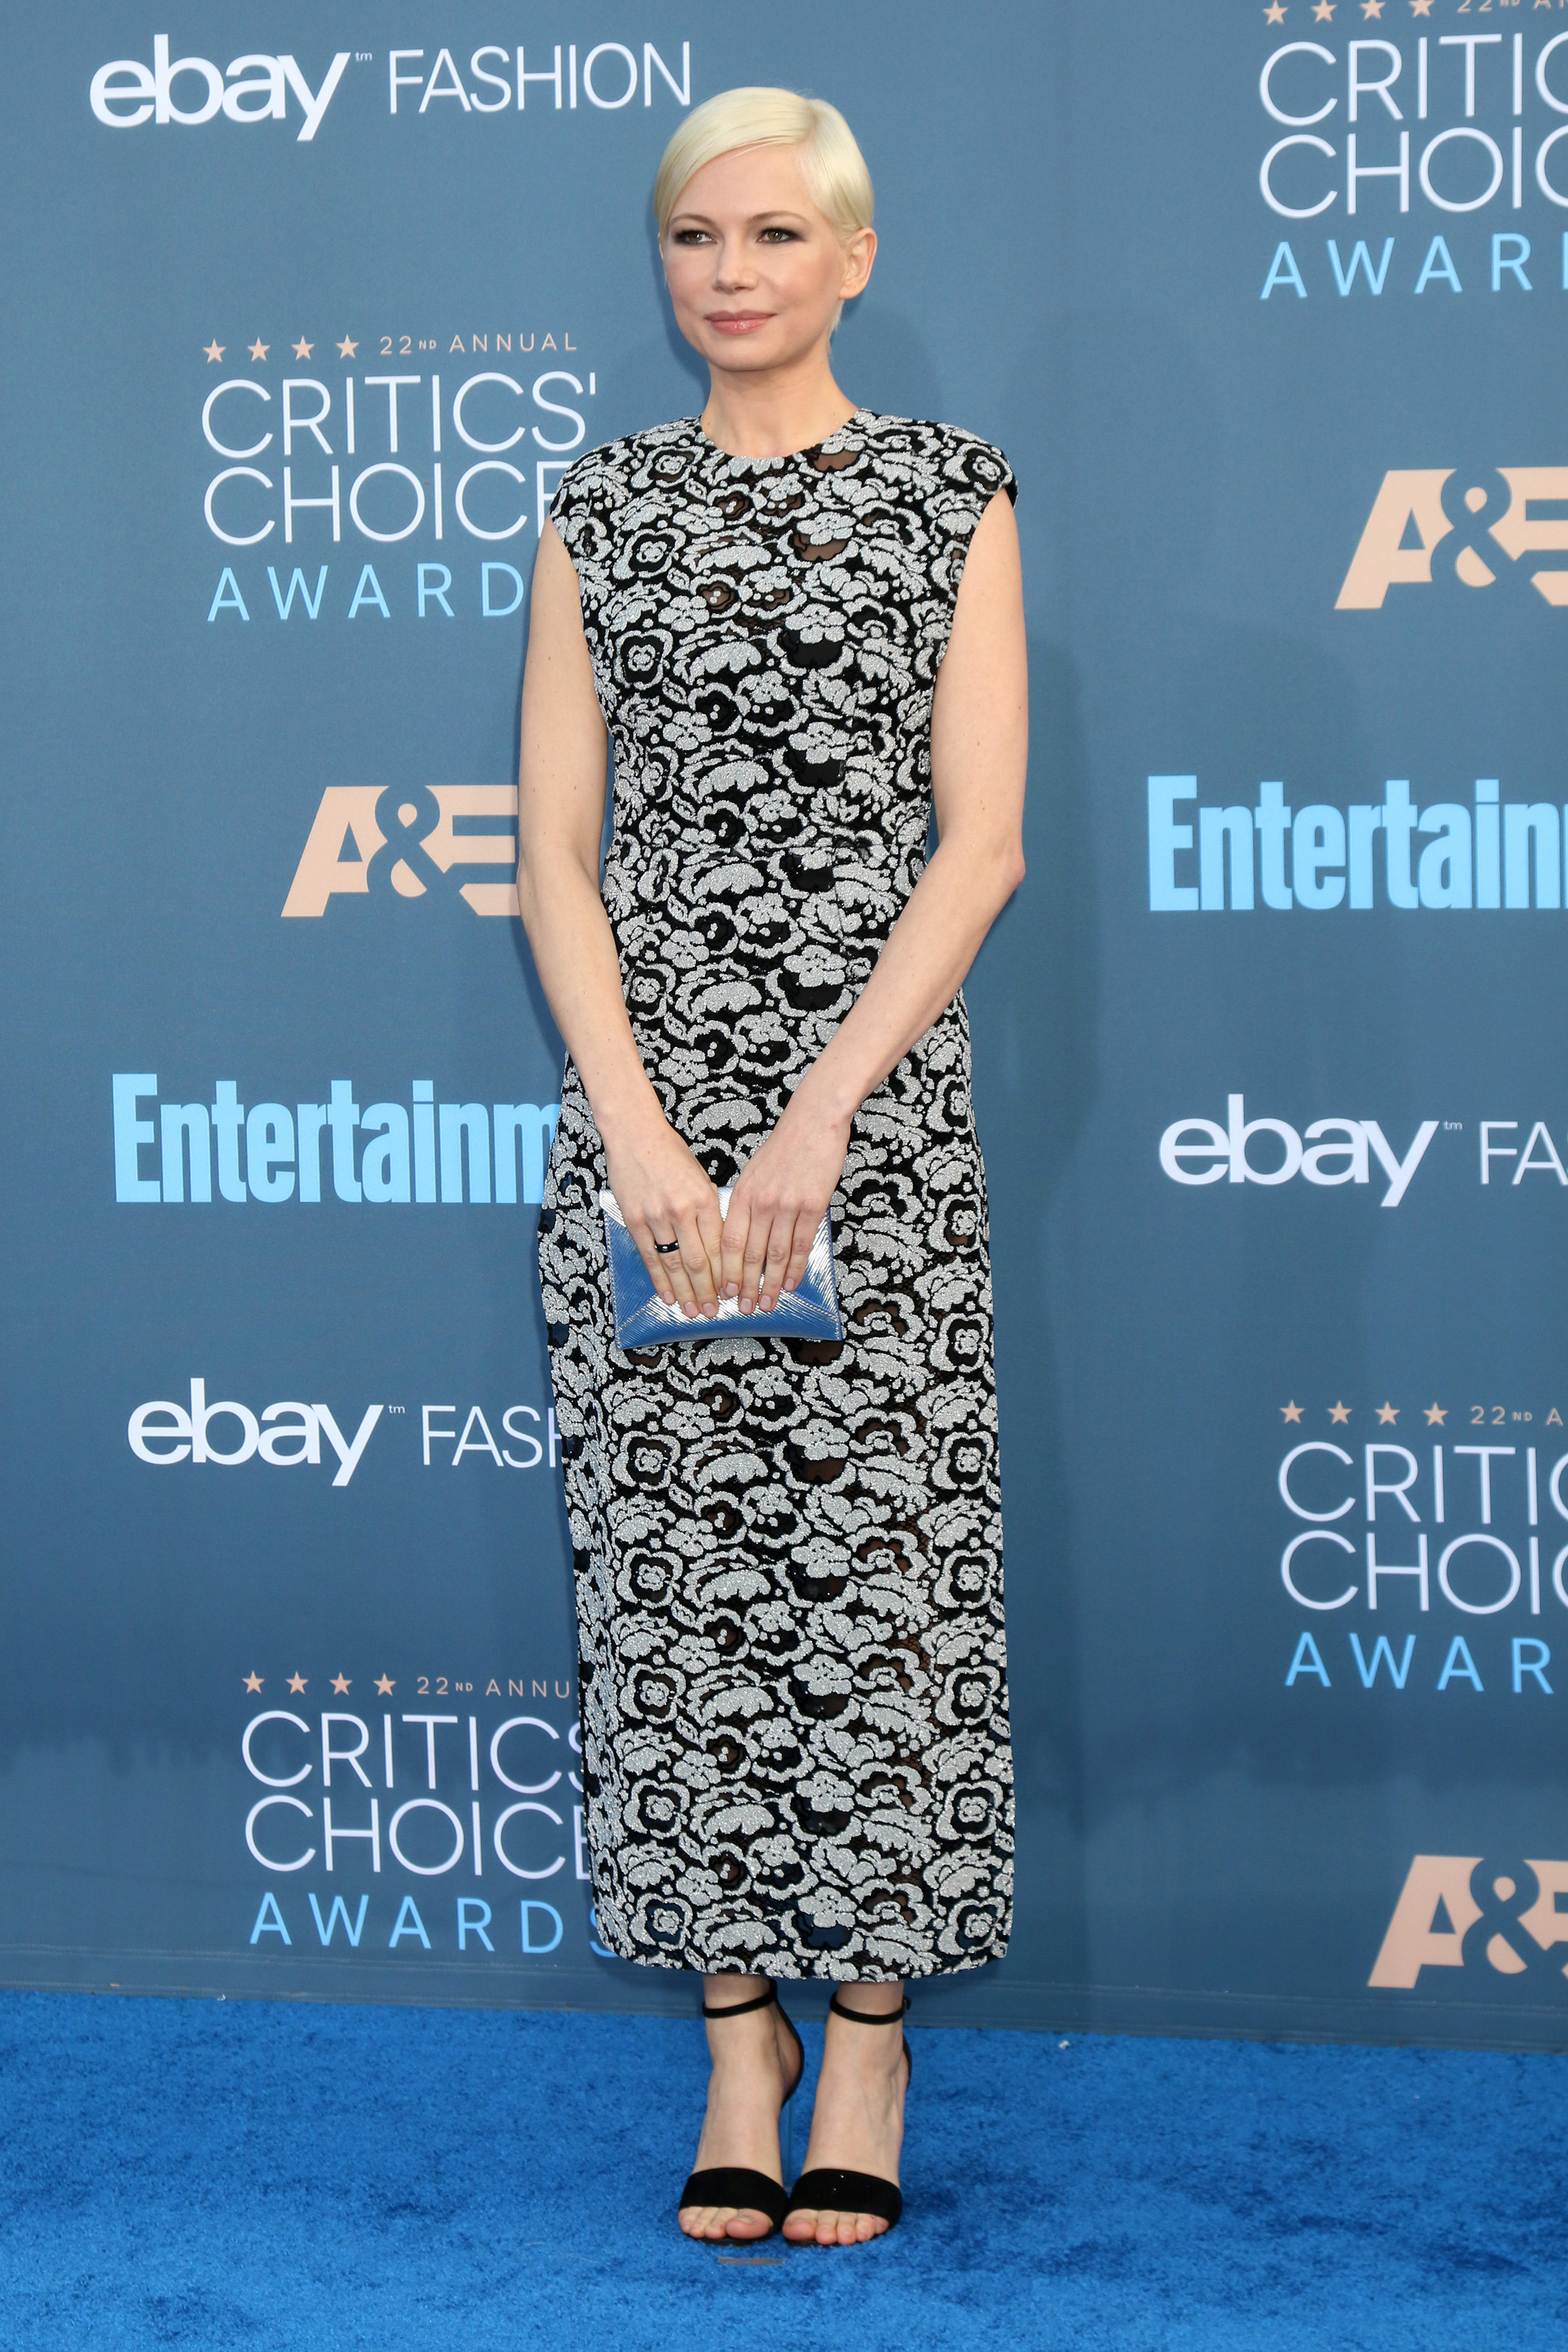 Michelle Williams Who Will Be Best Dressed